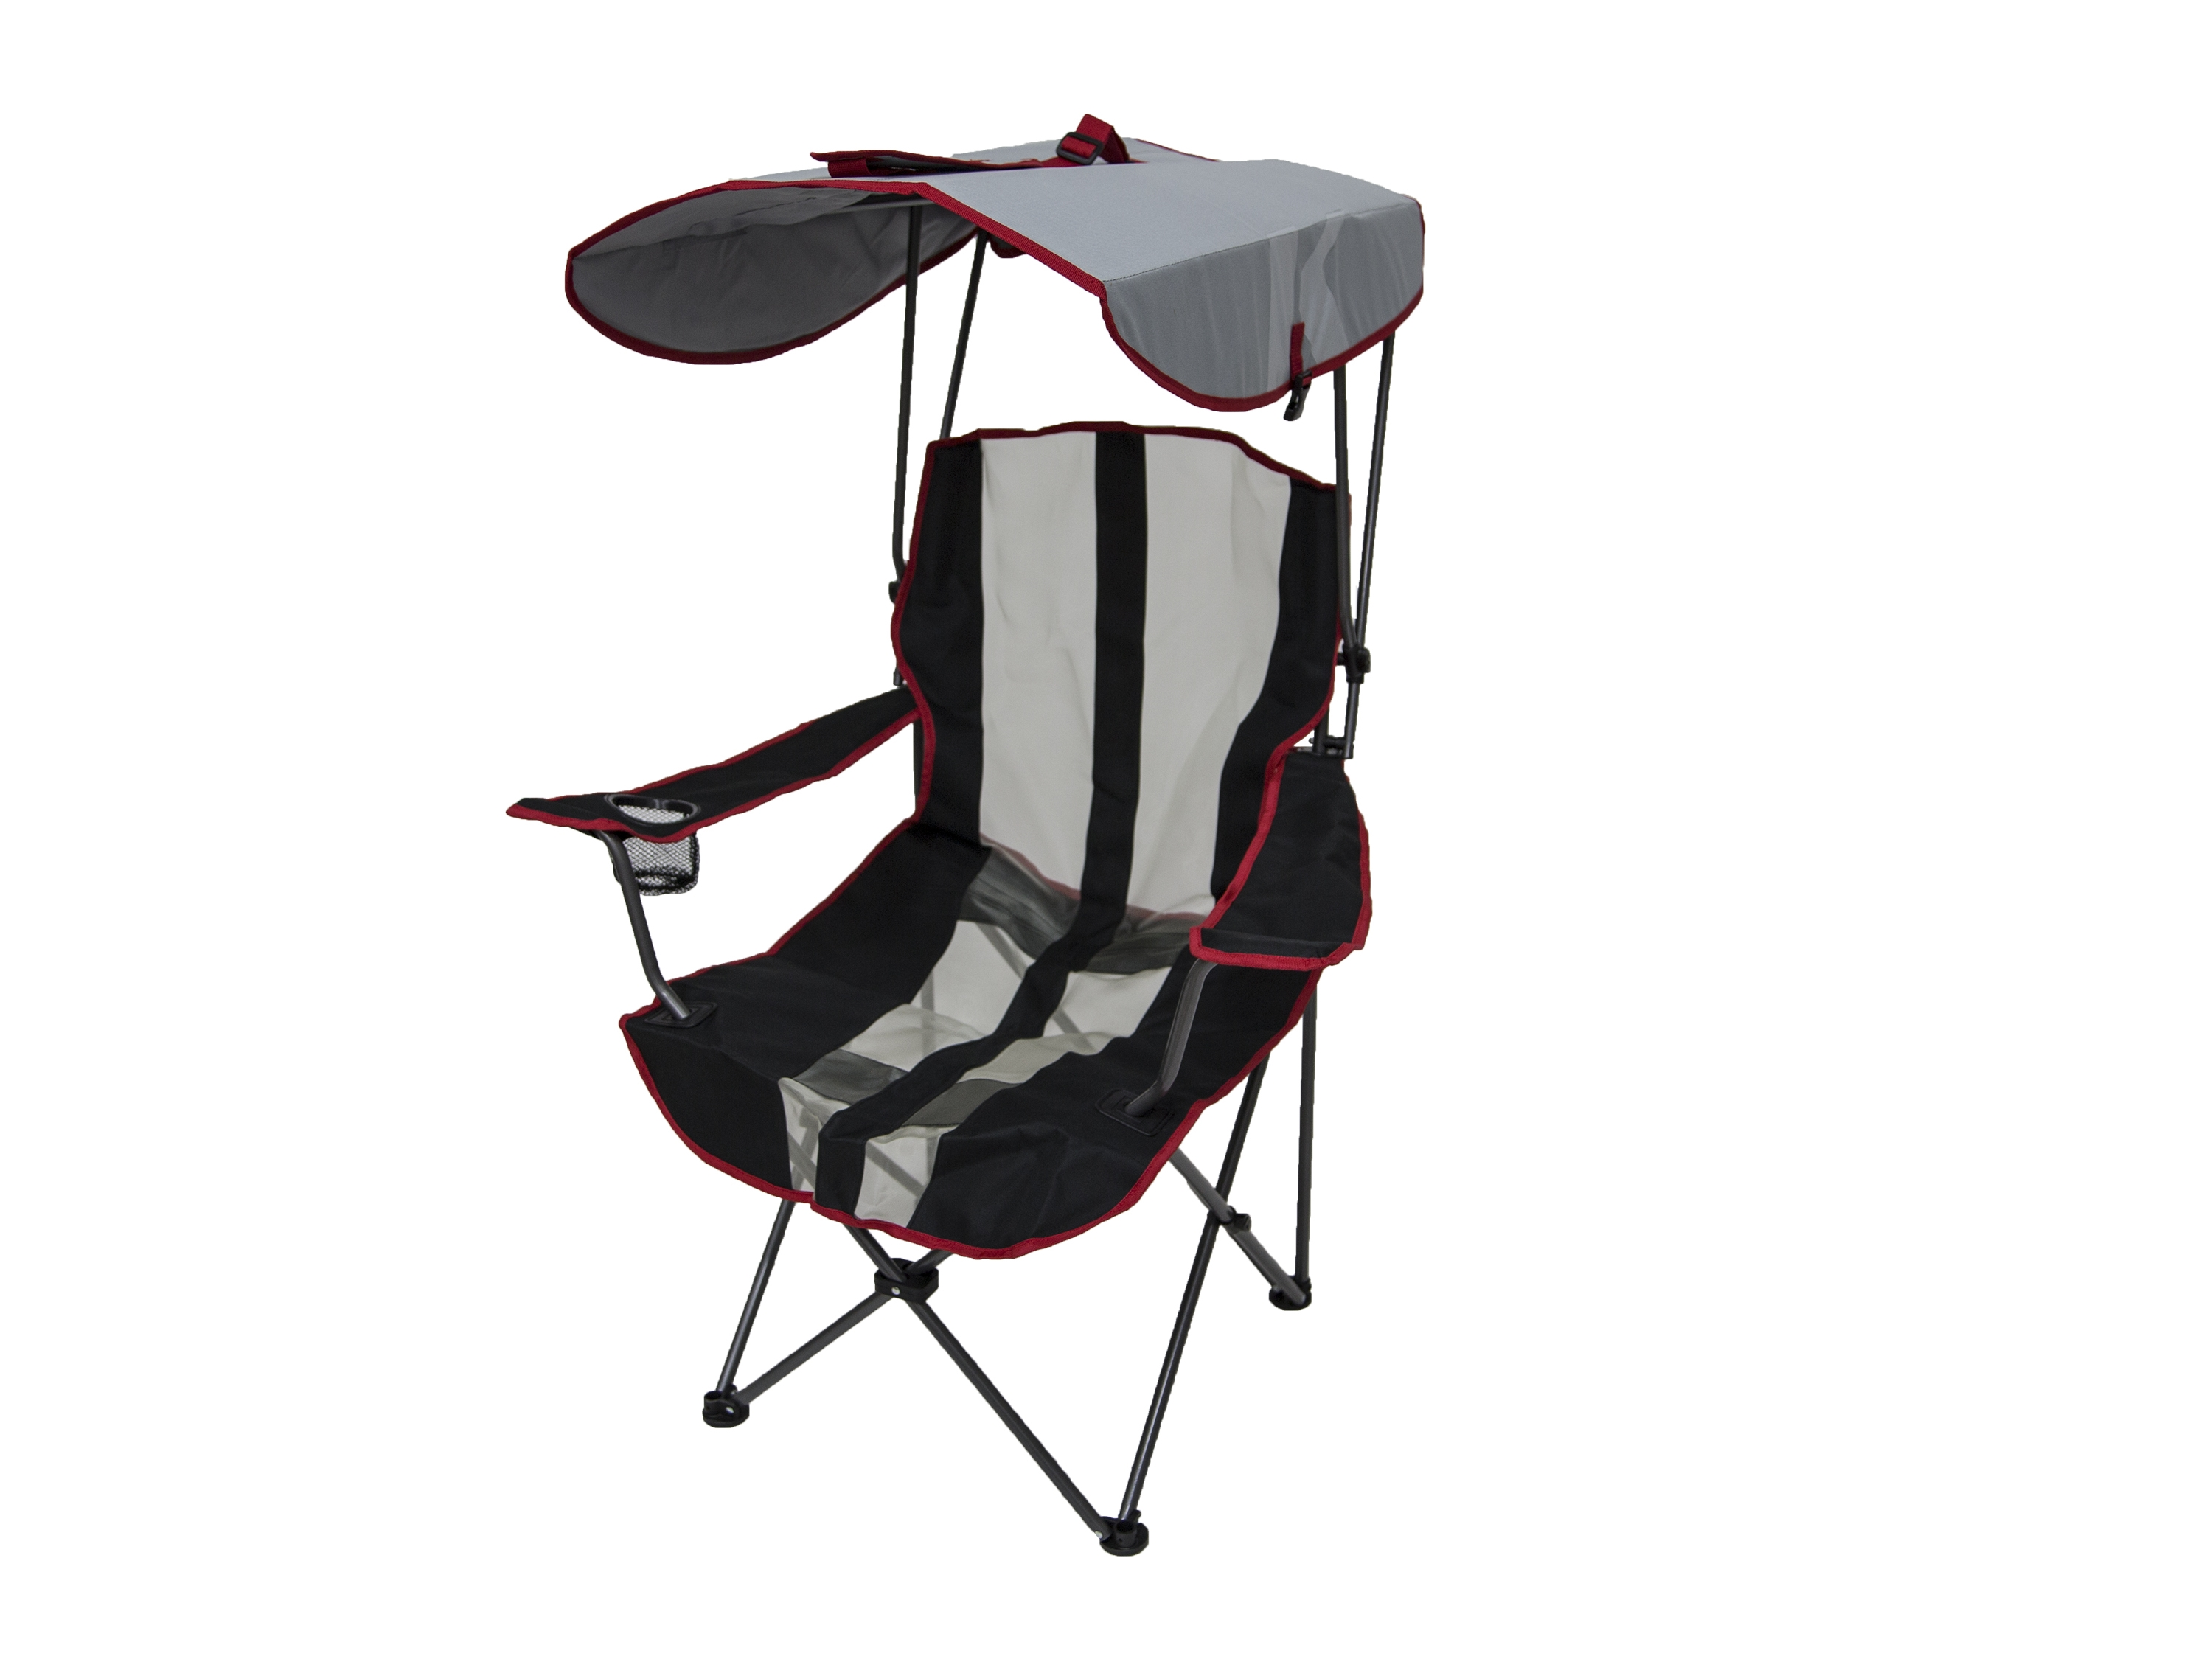 Foldable Lawn Chairs Details About Kelsyus Premium Canopy Foldable Outdoor Lawn Chair With Cup Holder Red 80187